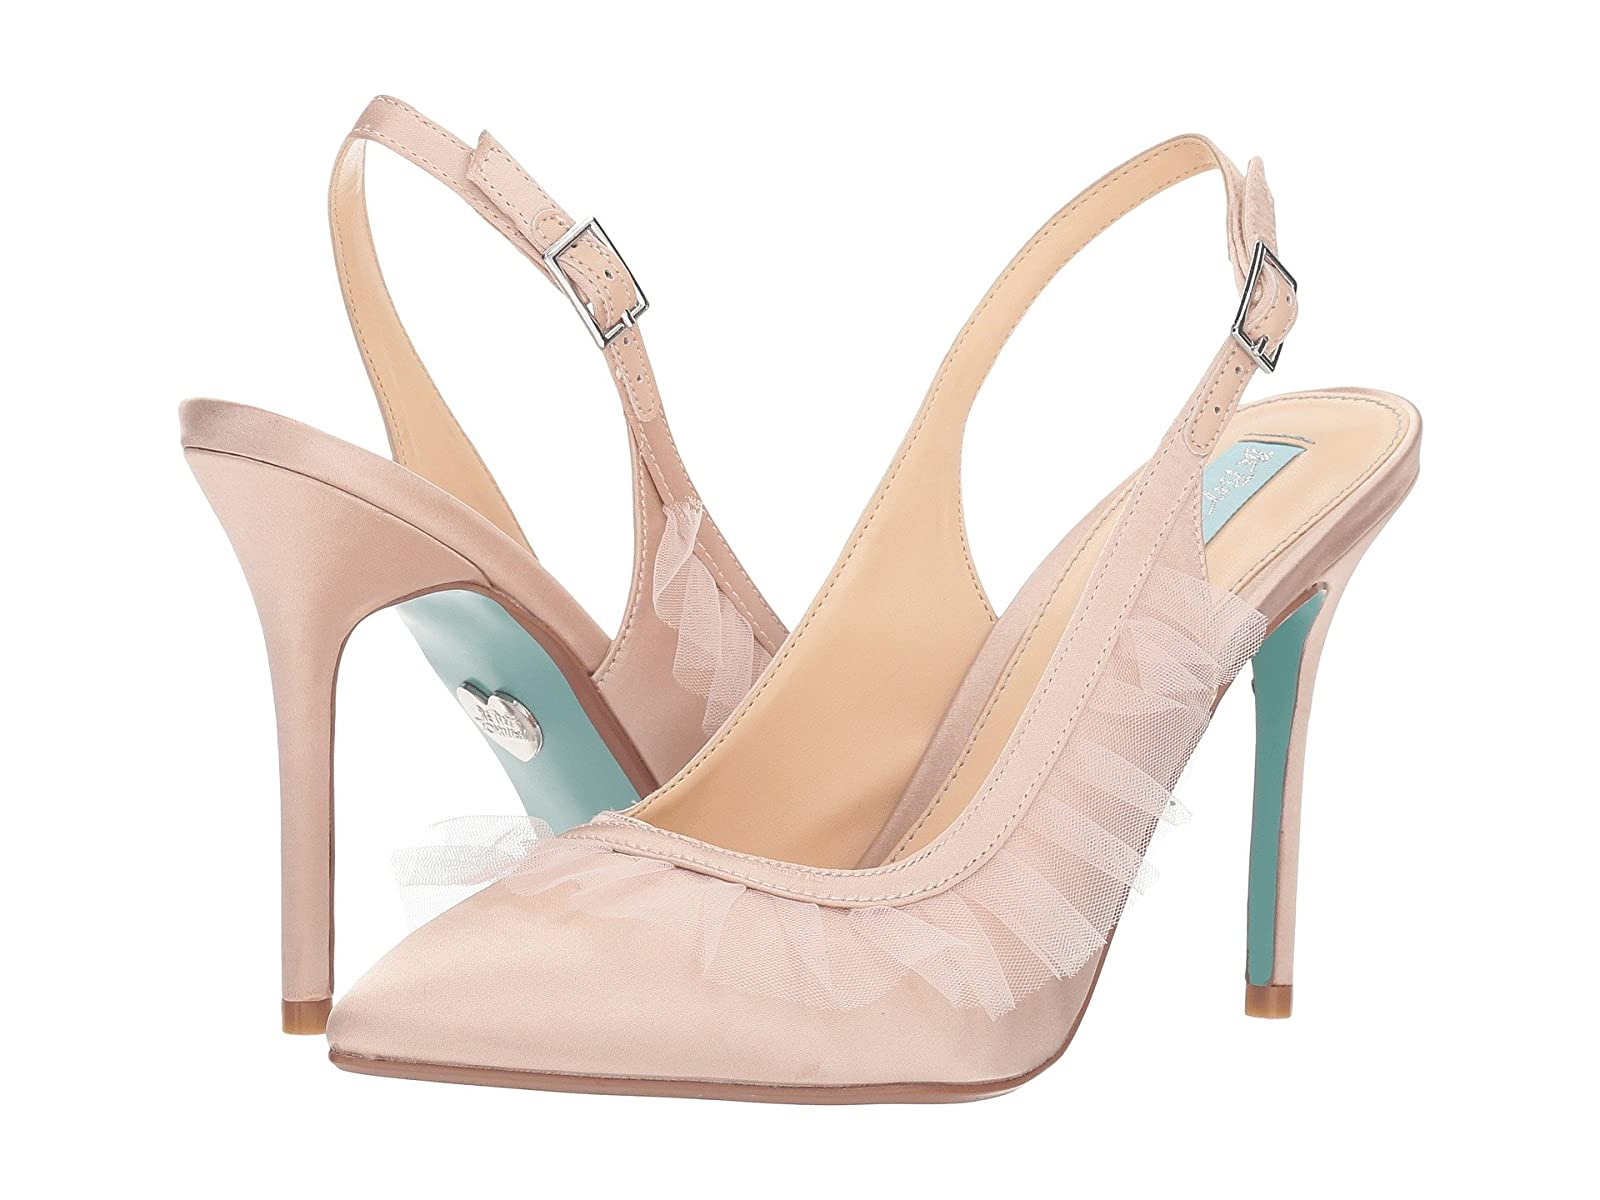 Blue by Betsey Johnson MiaAtmospheric grades have affordable shoes